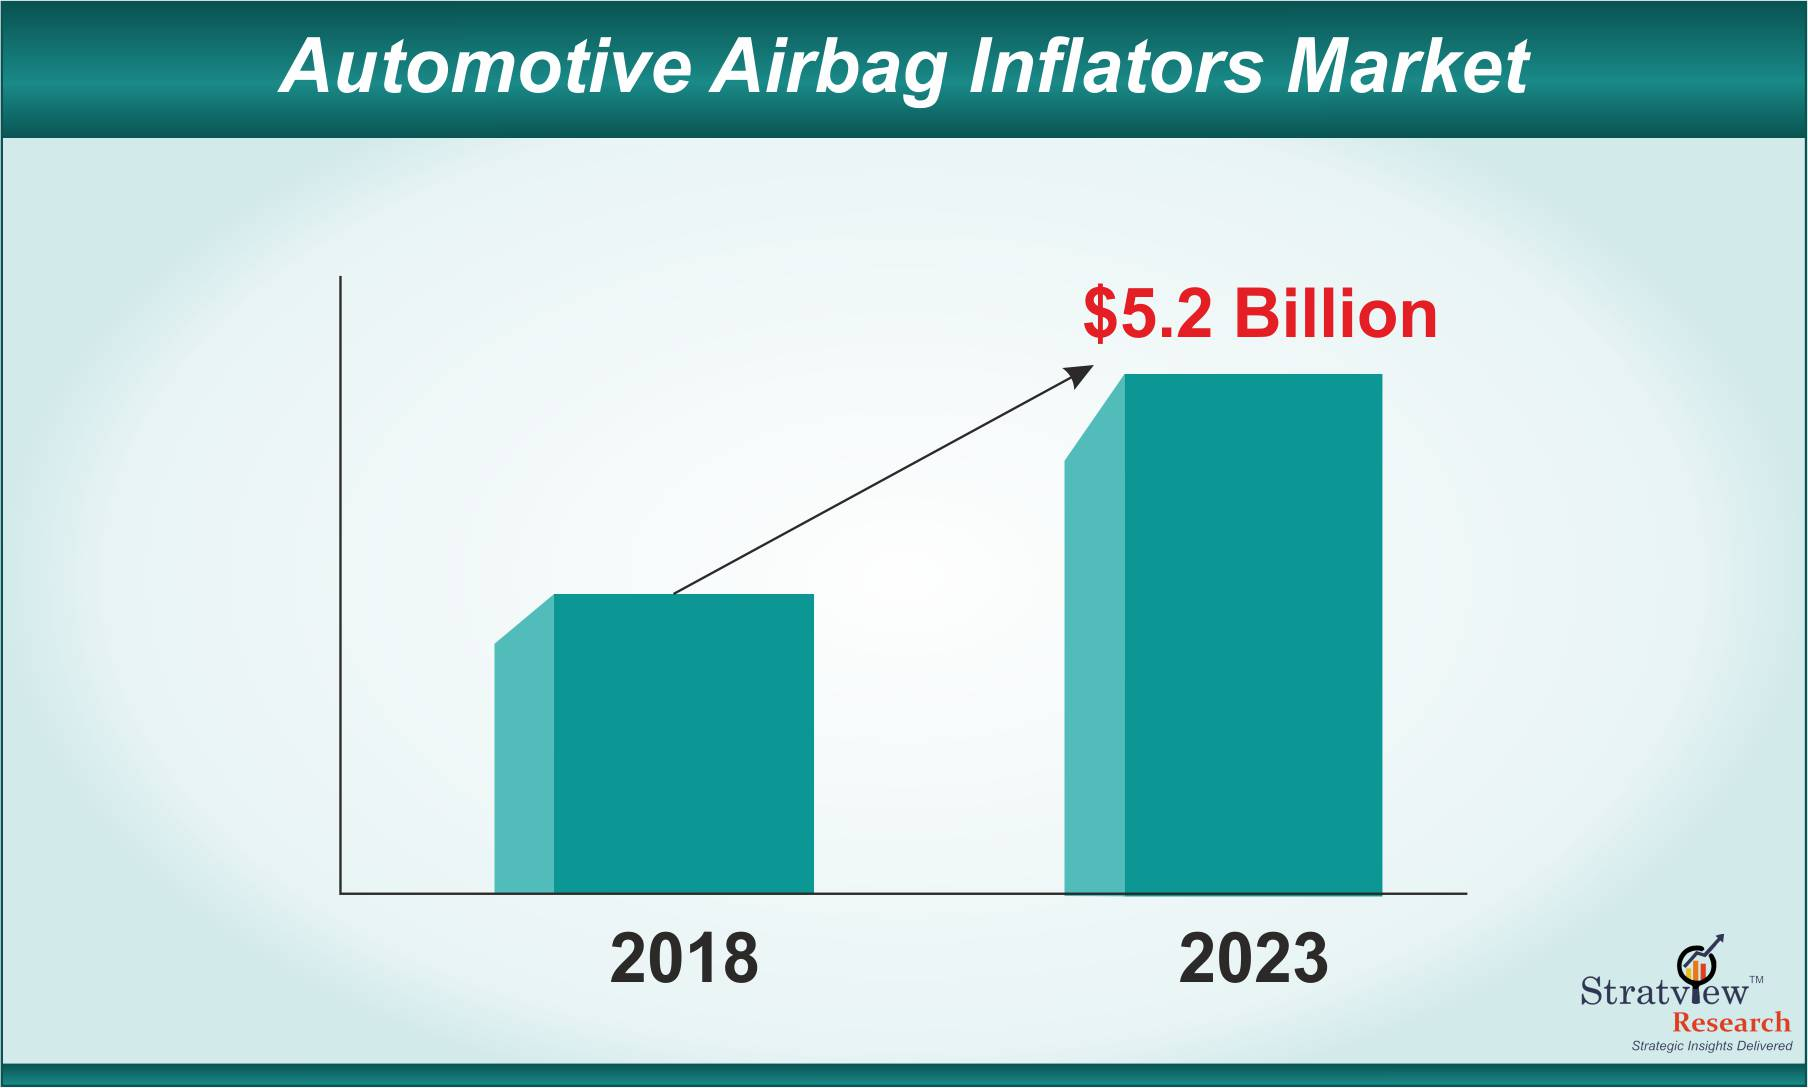 Automotive Airbag Inflators Market is Expected to Reach US$ 5.2 Billion by 2023